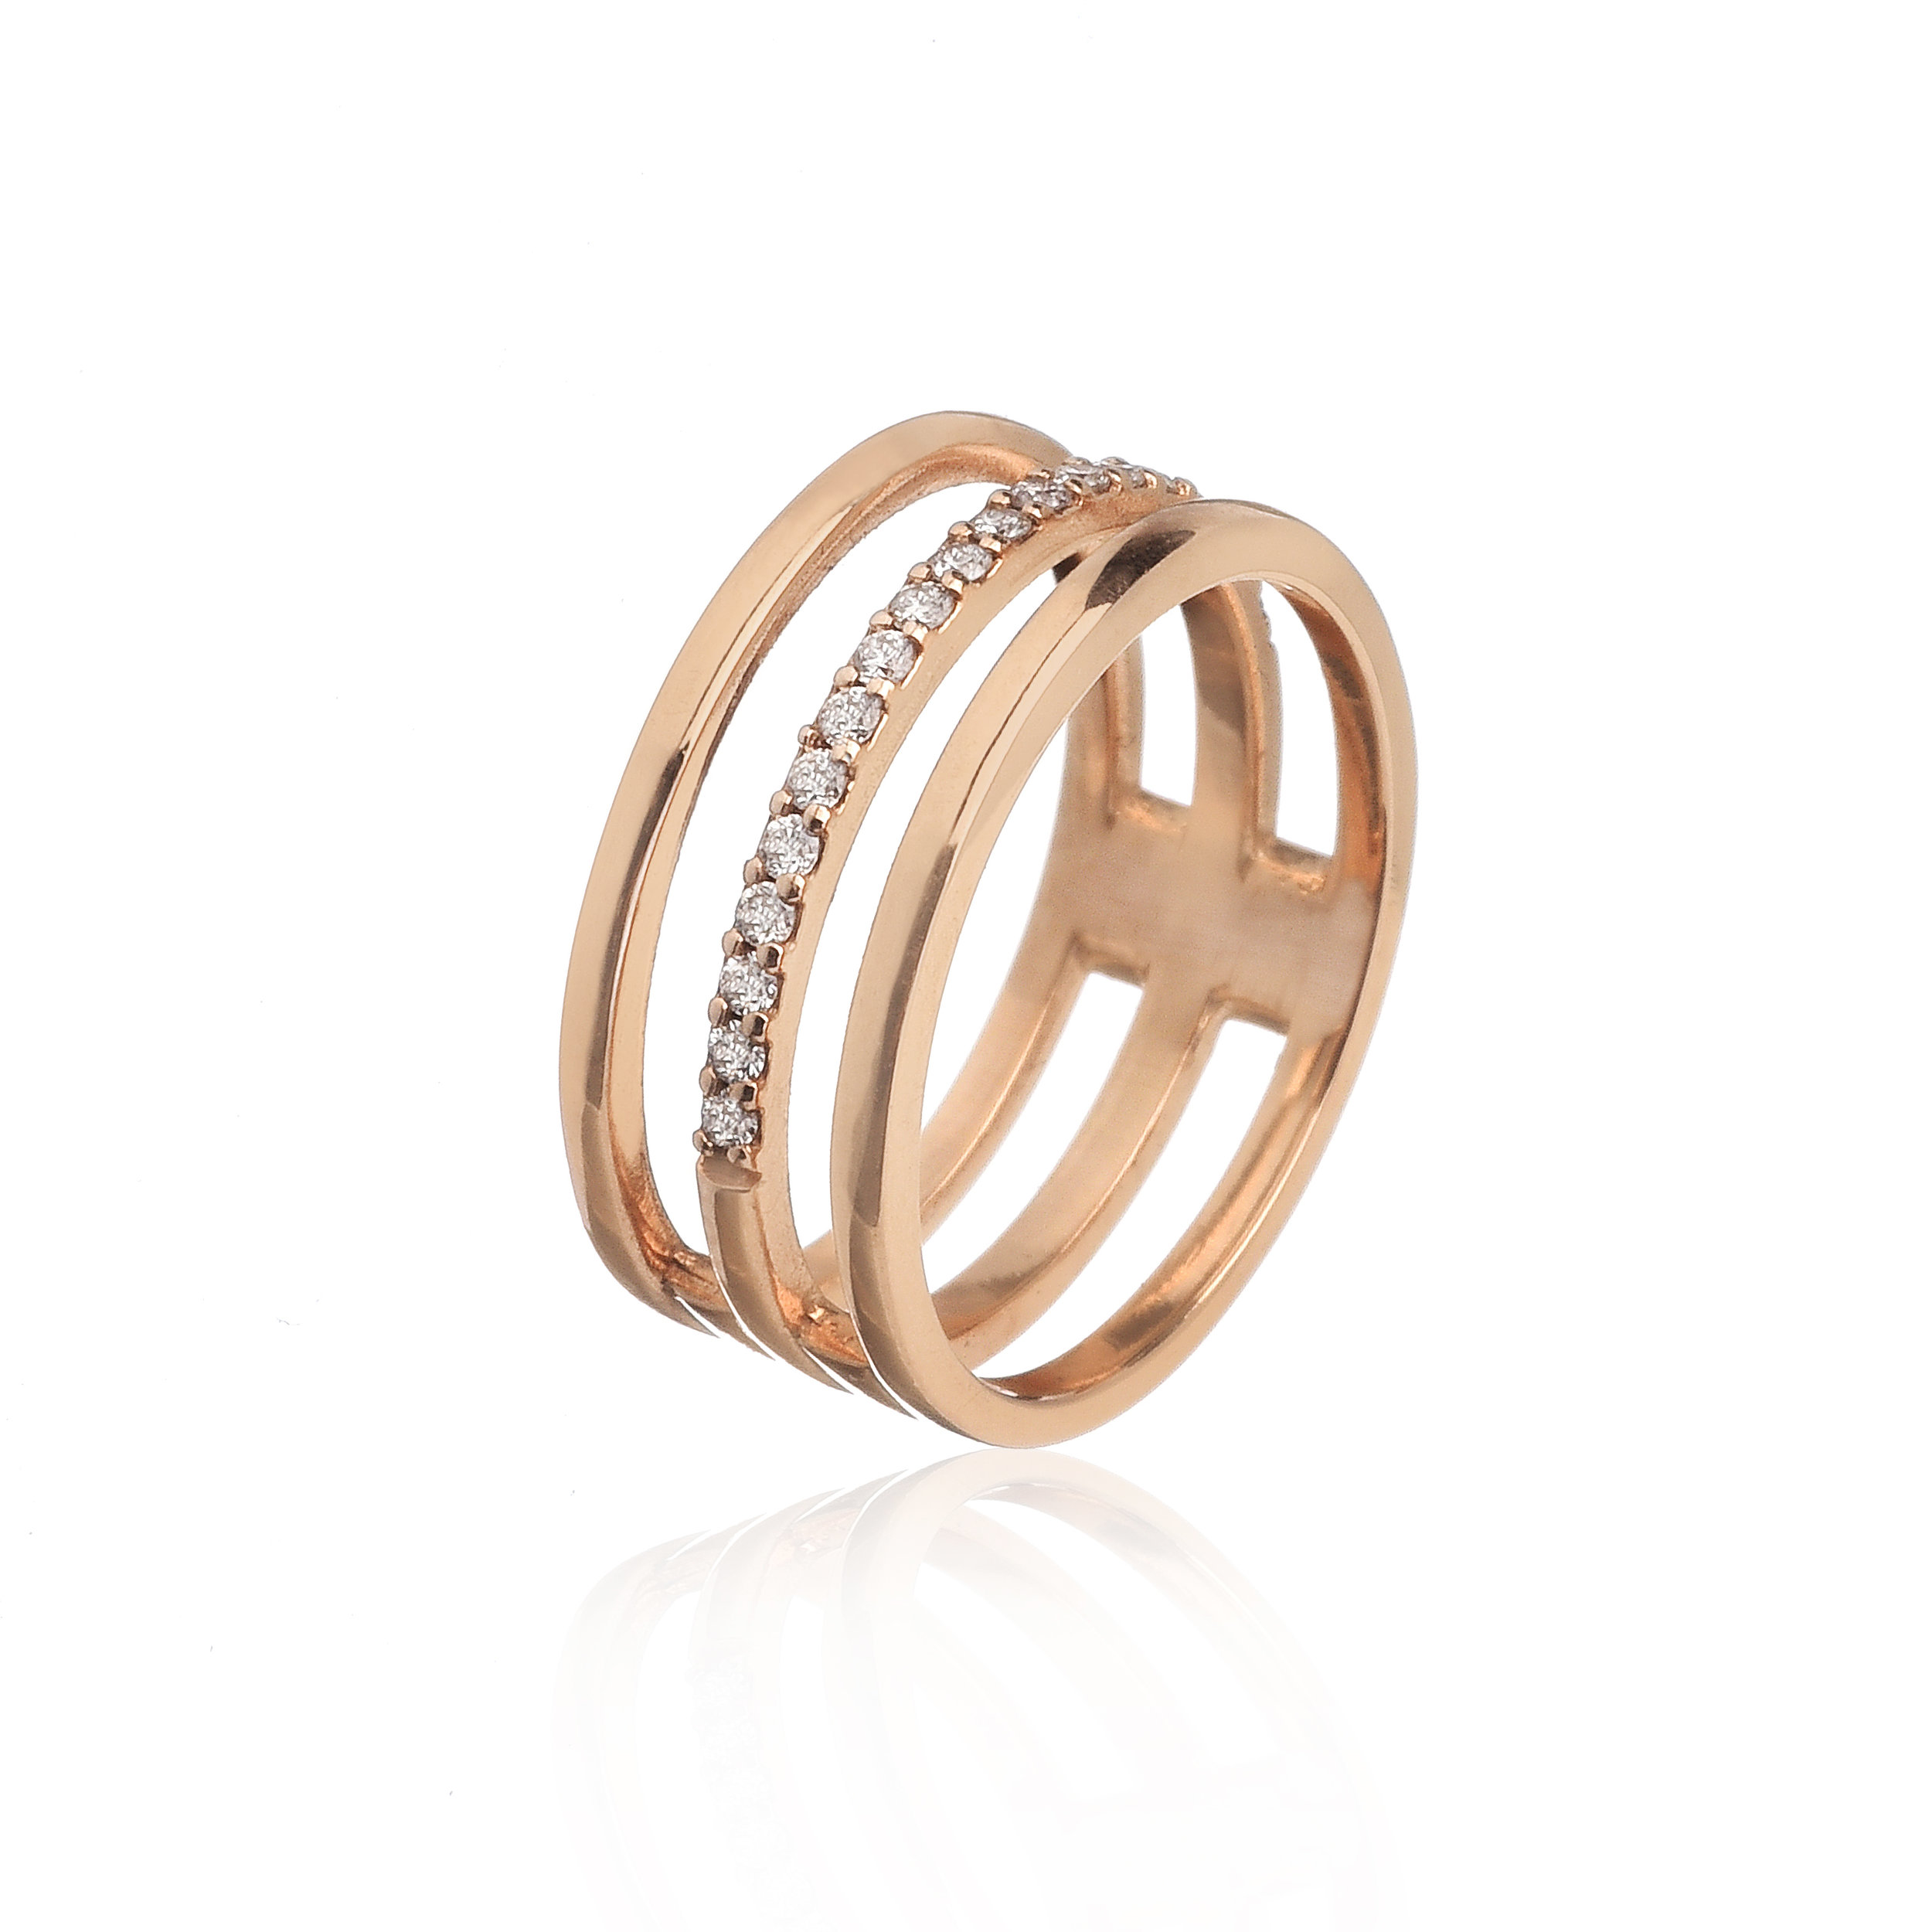 FALANGE RING - BY CONTEMPORARY JEWELS